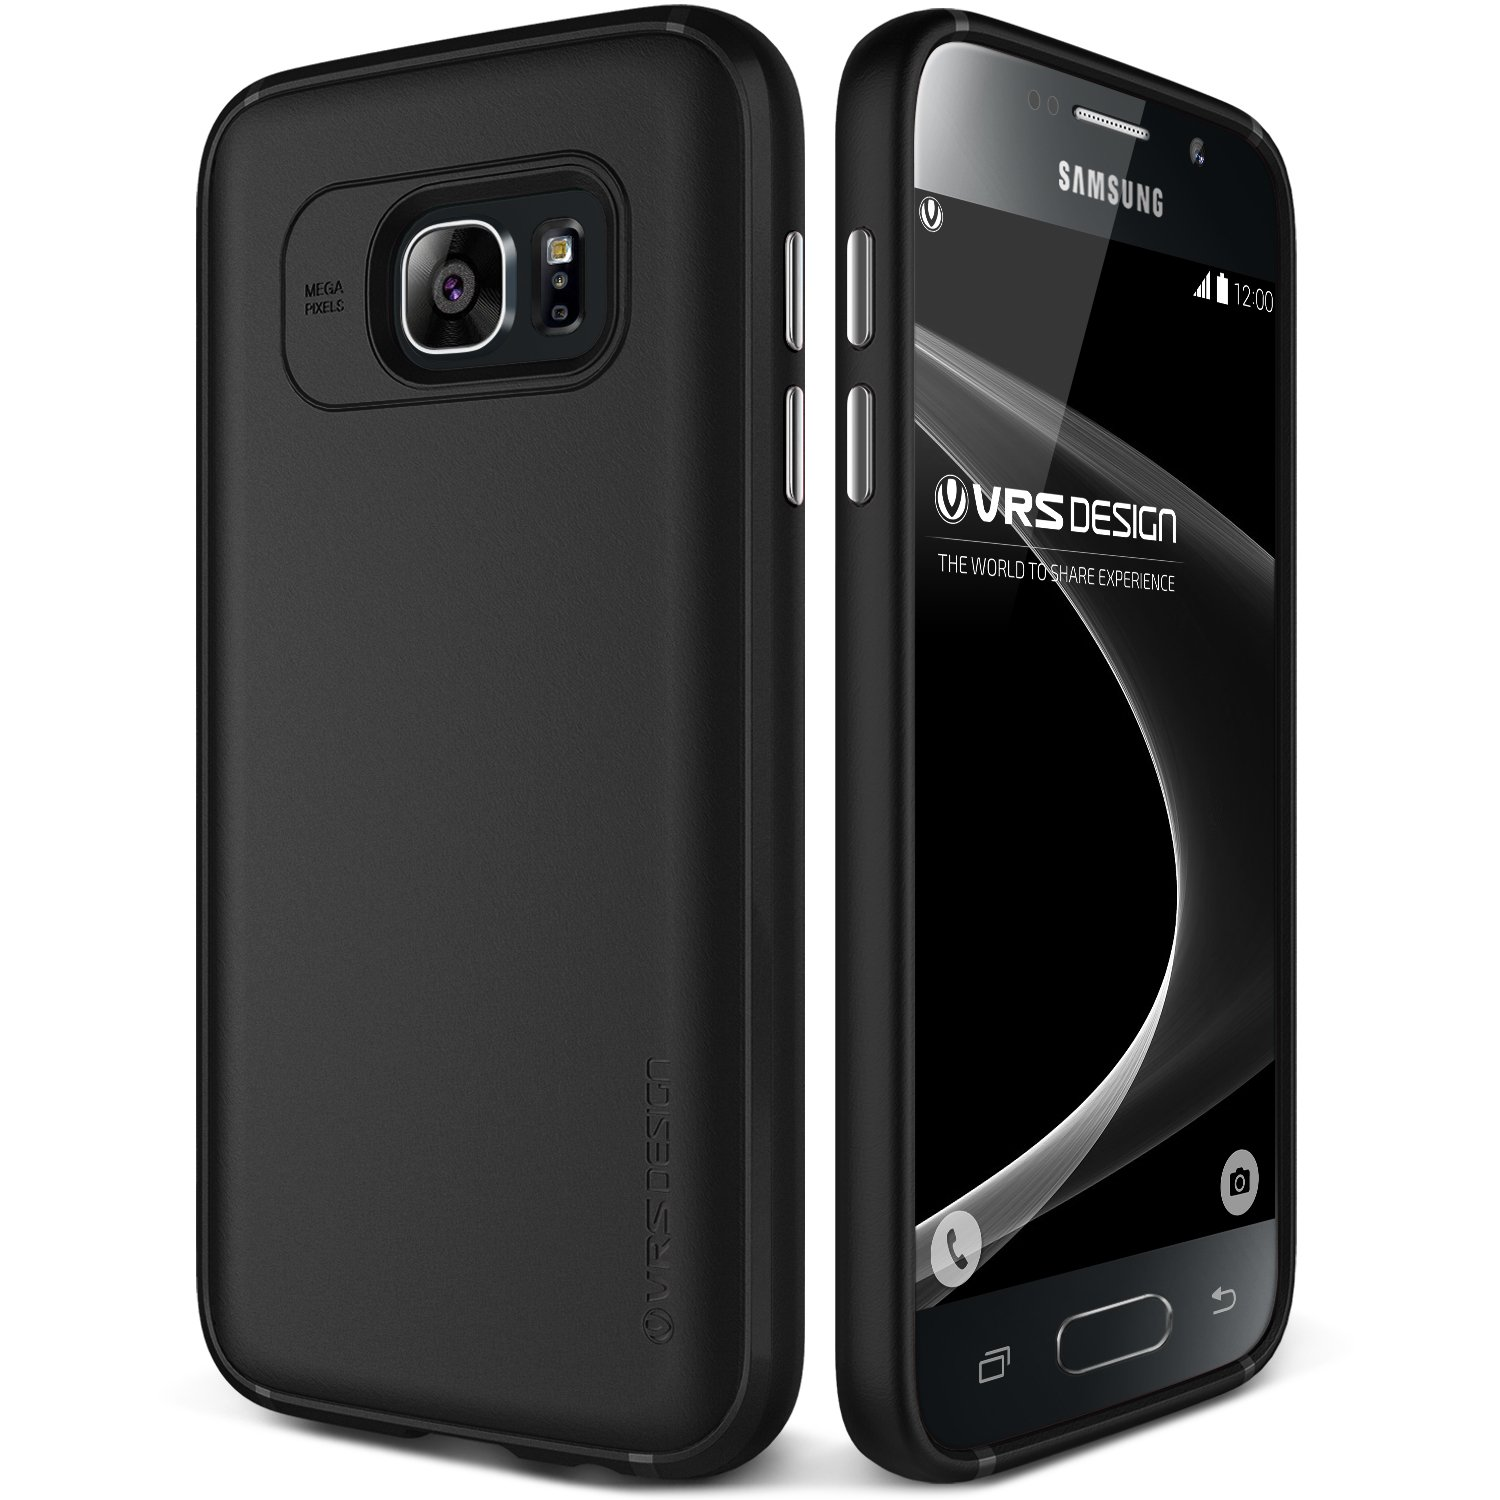 ef rug c protective not cover phone case samsung included b smartphone h product galaxy for rugged black reg